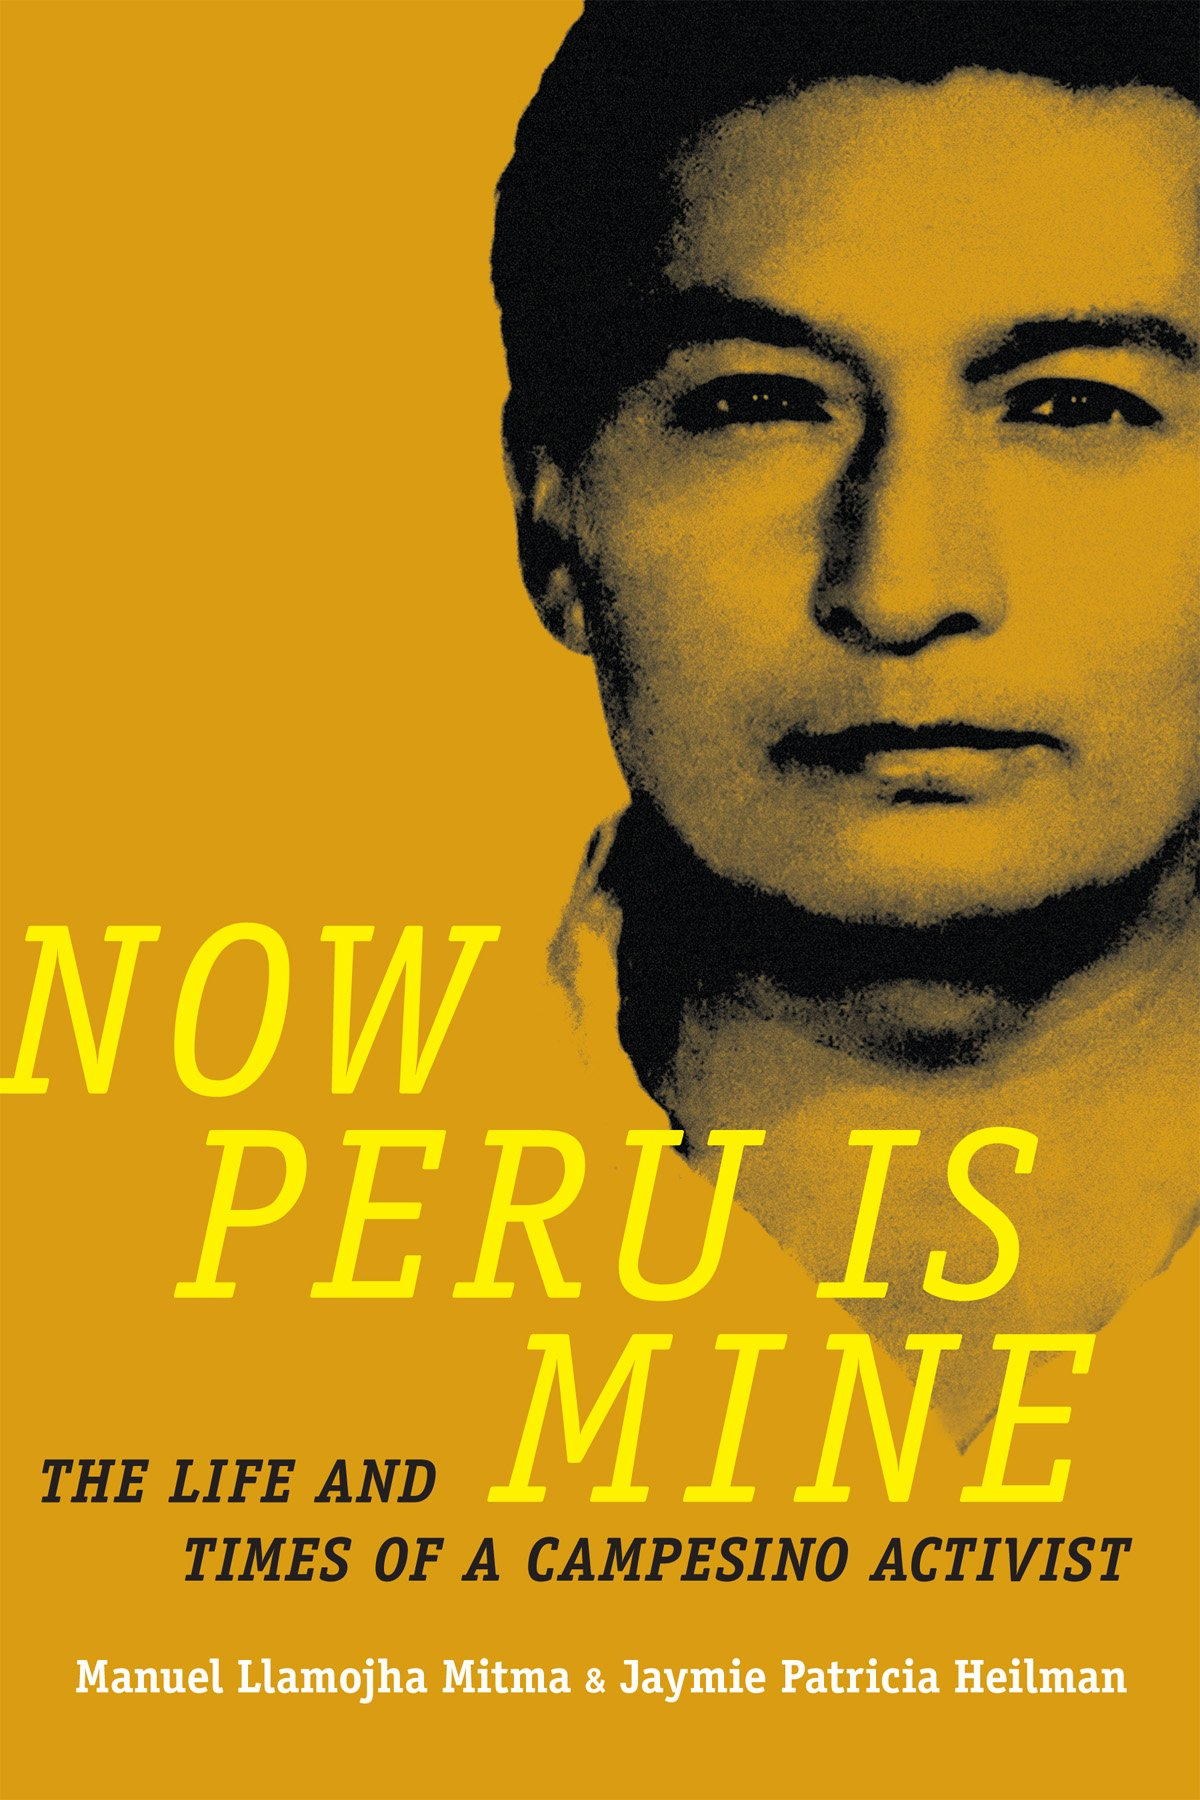 Download Now Peru Is Mine: The Life and Times of a Campesino Activist (Narrating Native Histories) ebook